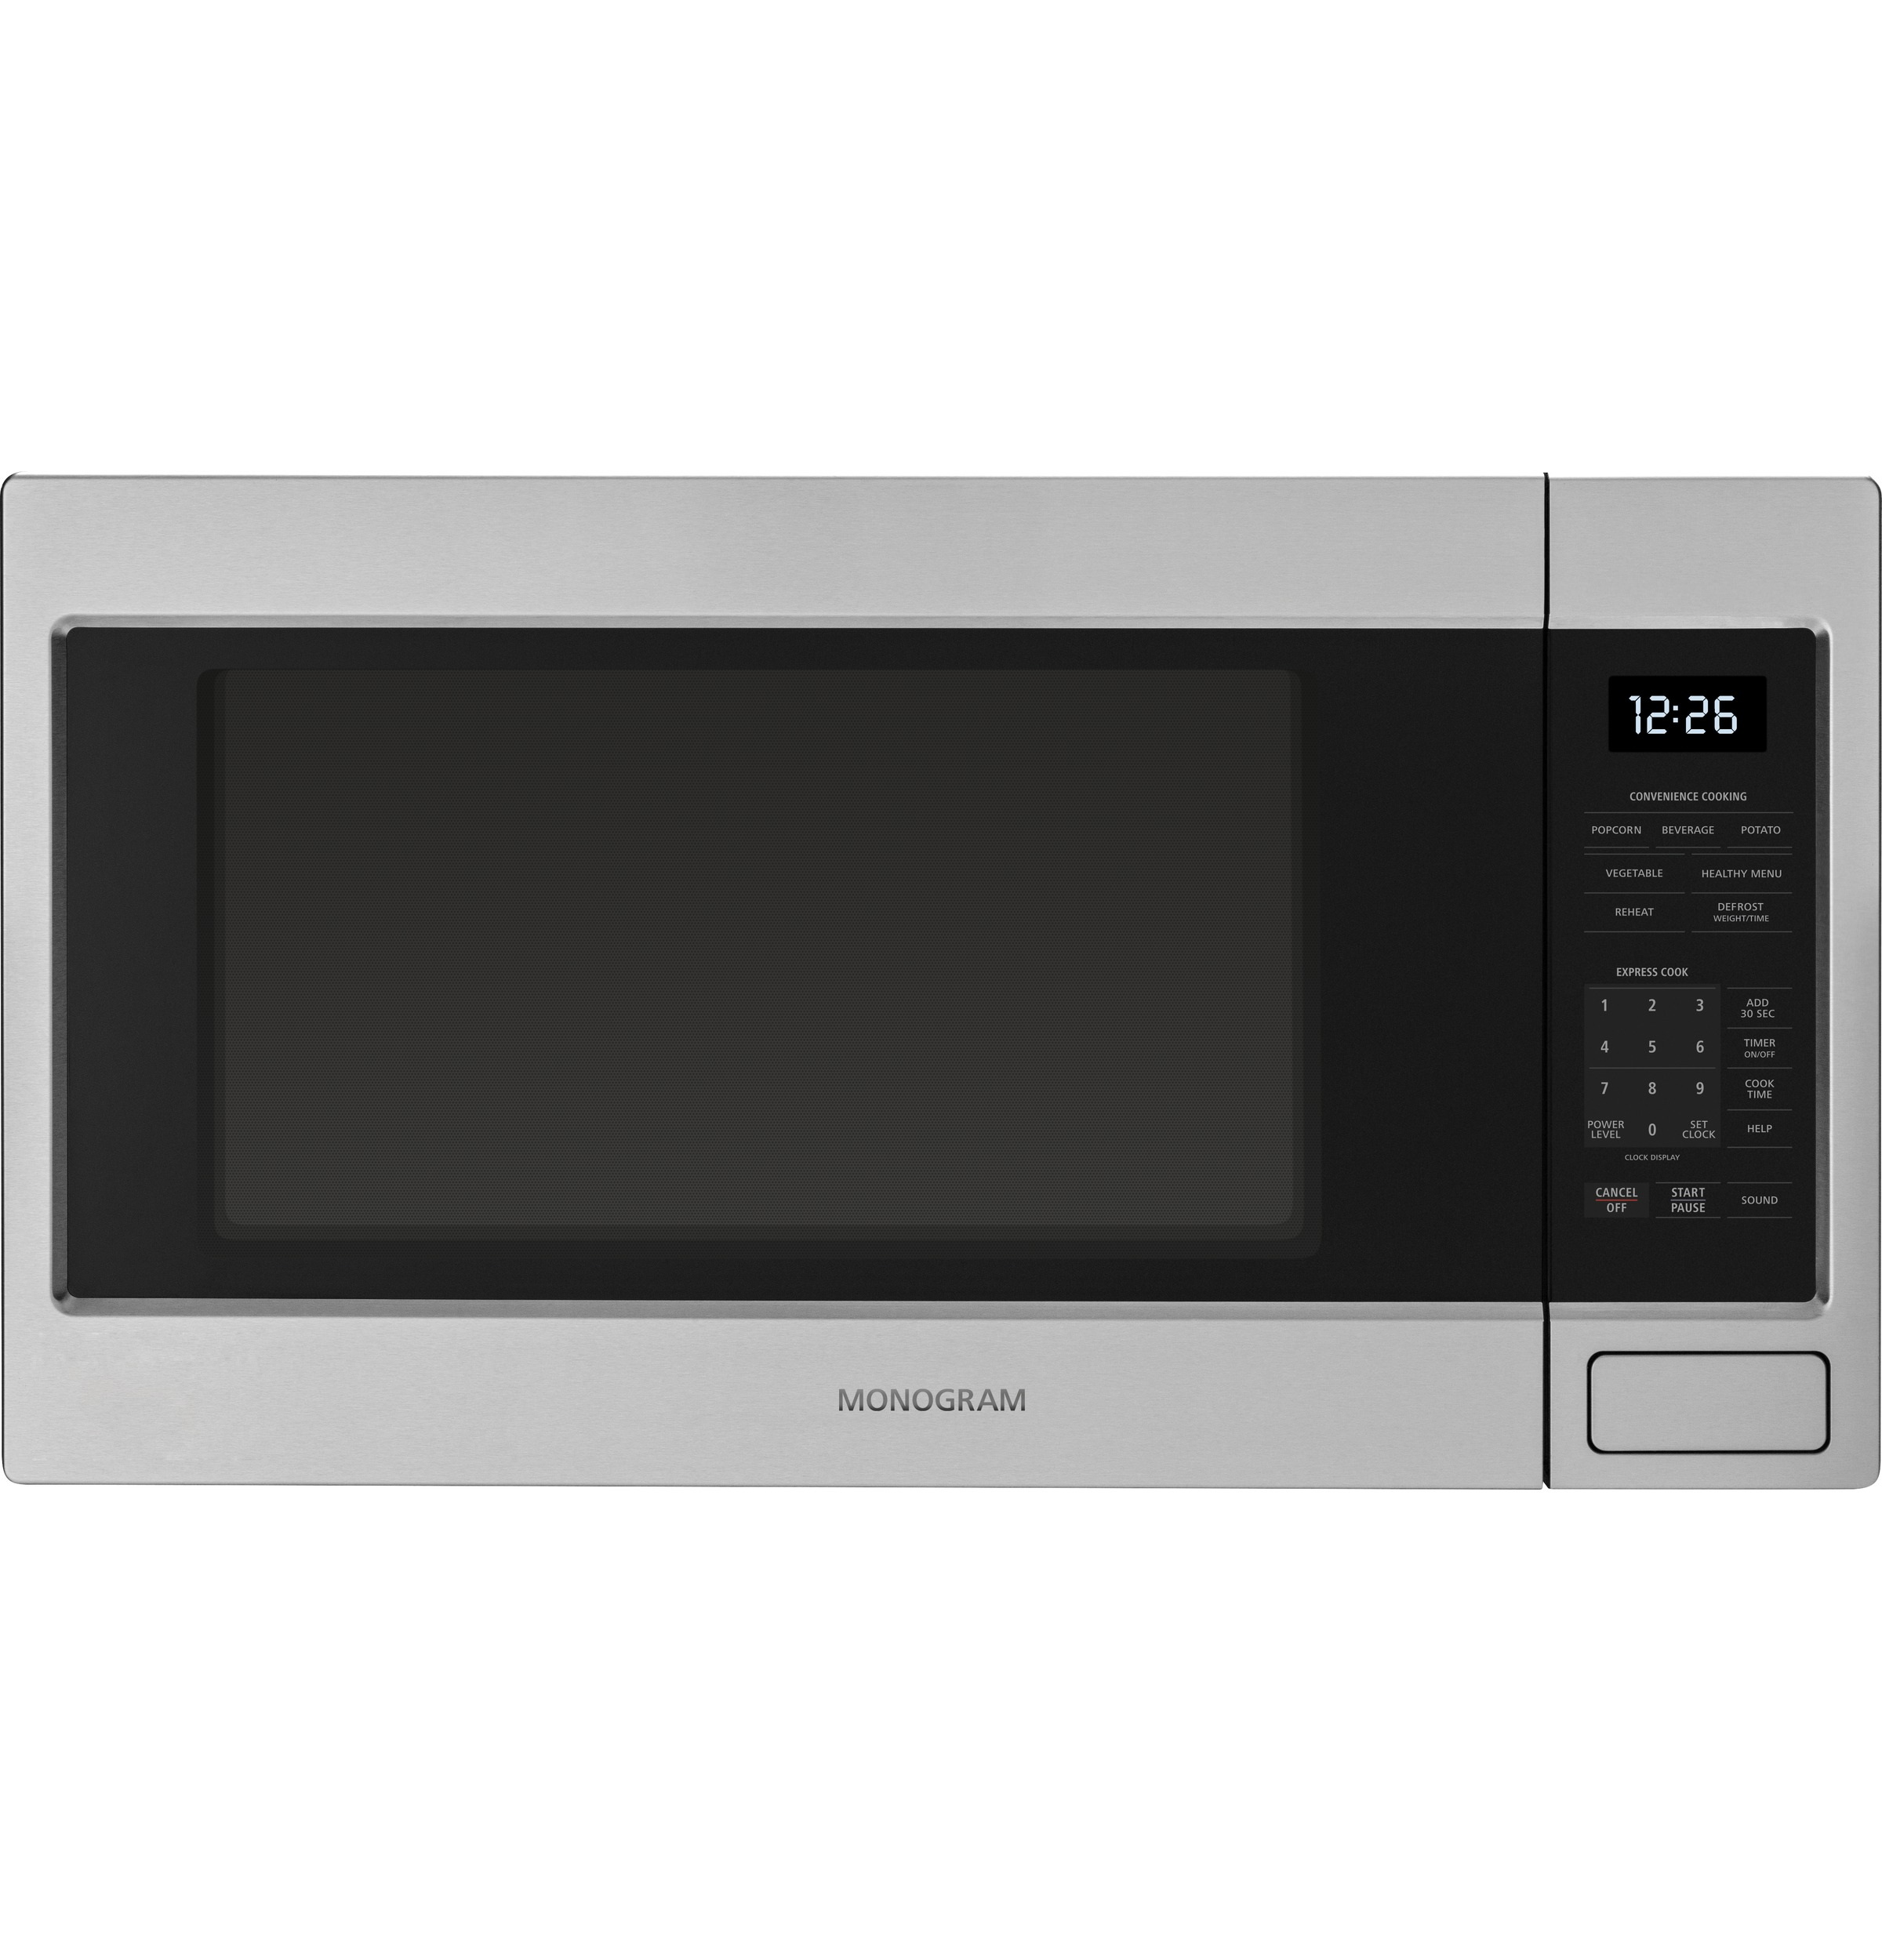 Countertop Advantium Oven : ... Cu. Ft. Countertop Microwave Oven - The Monogram Collection